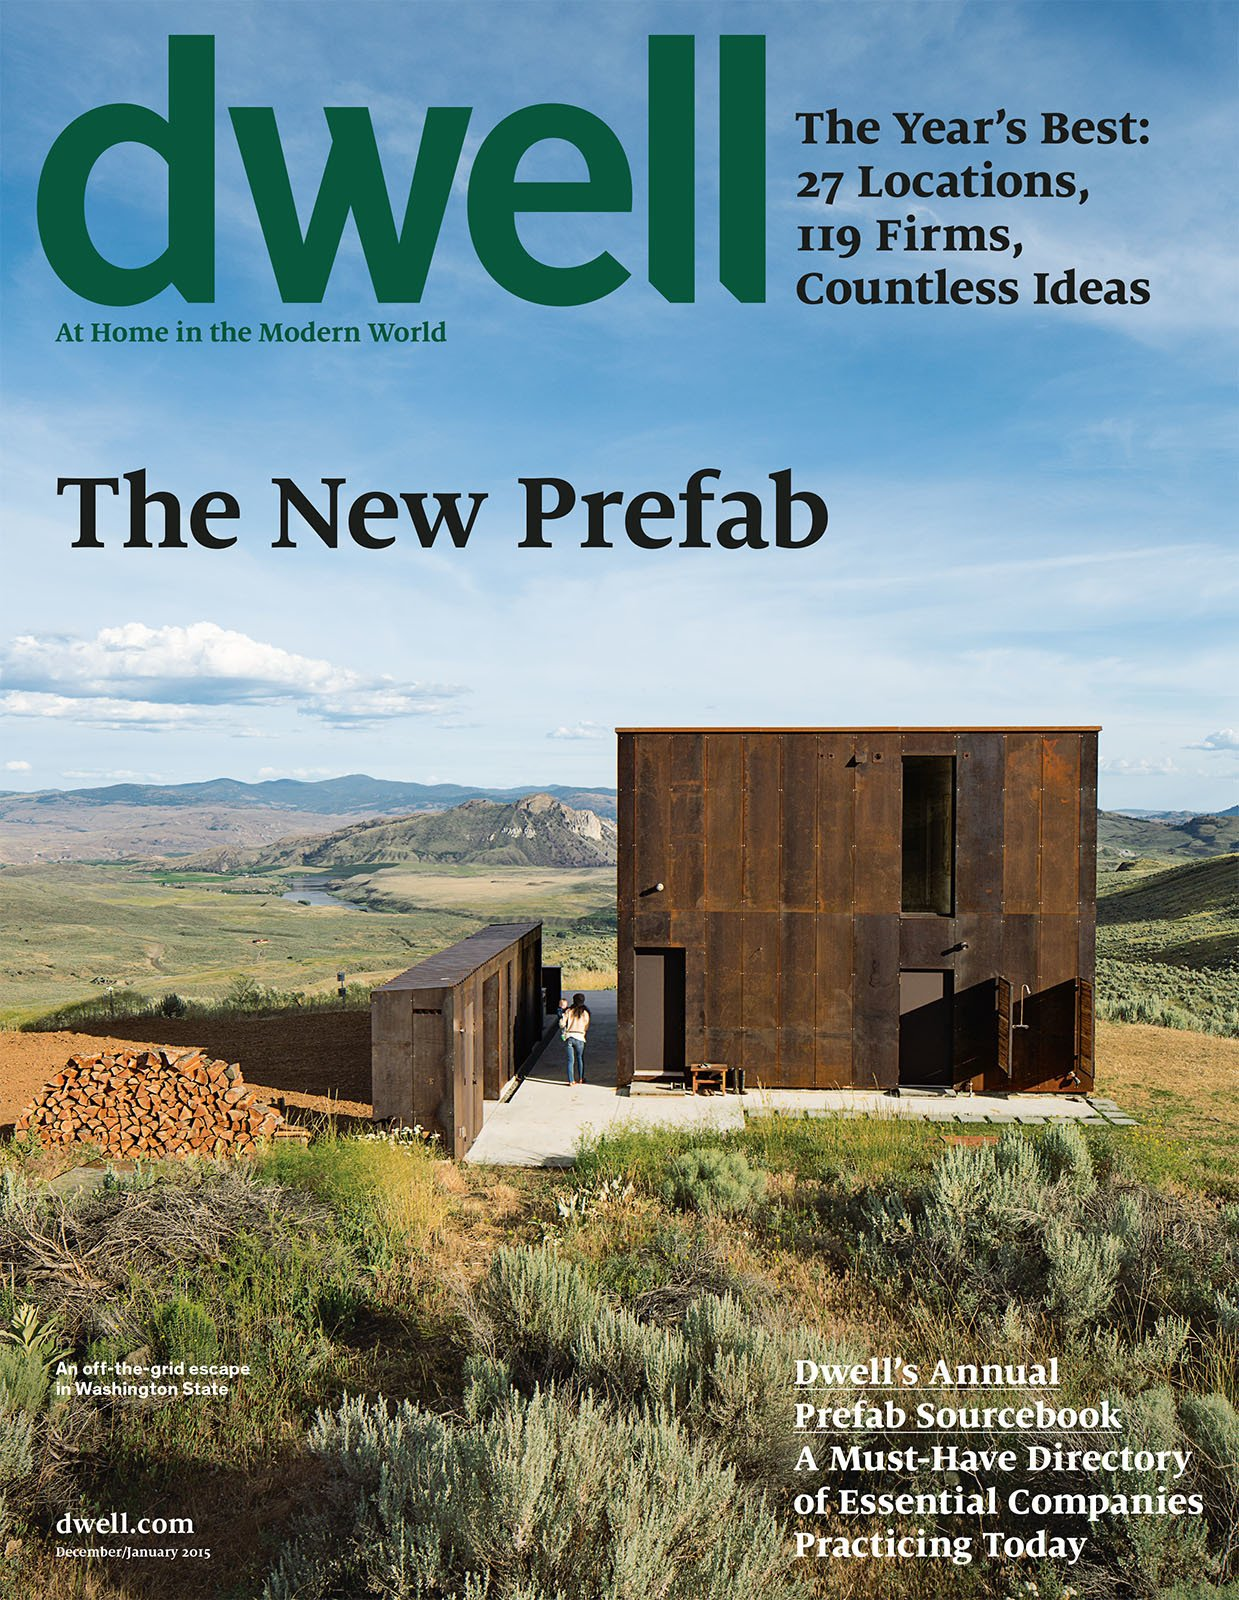 Dwell December 2015, Vol. 15 Issue 01: The New Prefab by Dwell